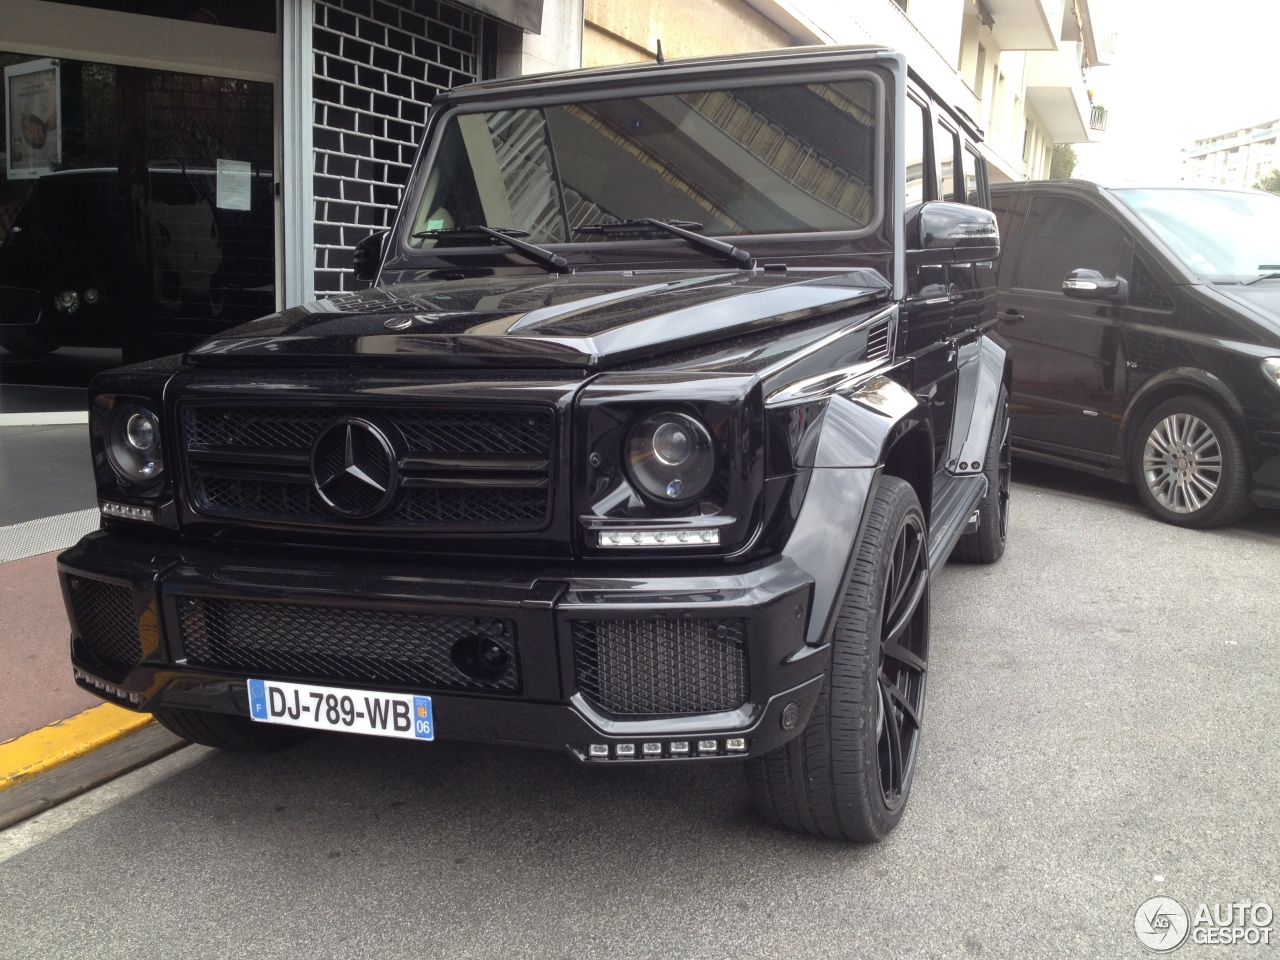 mercedes benz brabus g 63 amg b63 620 16 april 2015. Black Bedroom Furniture Sets. Home Design Ideas